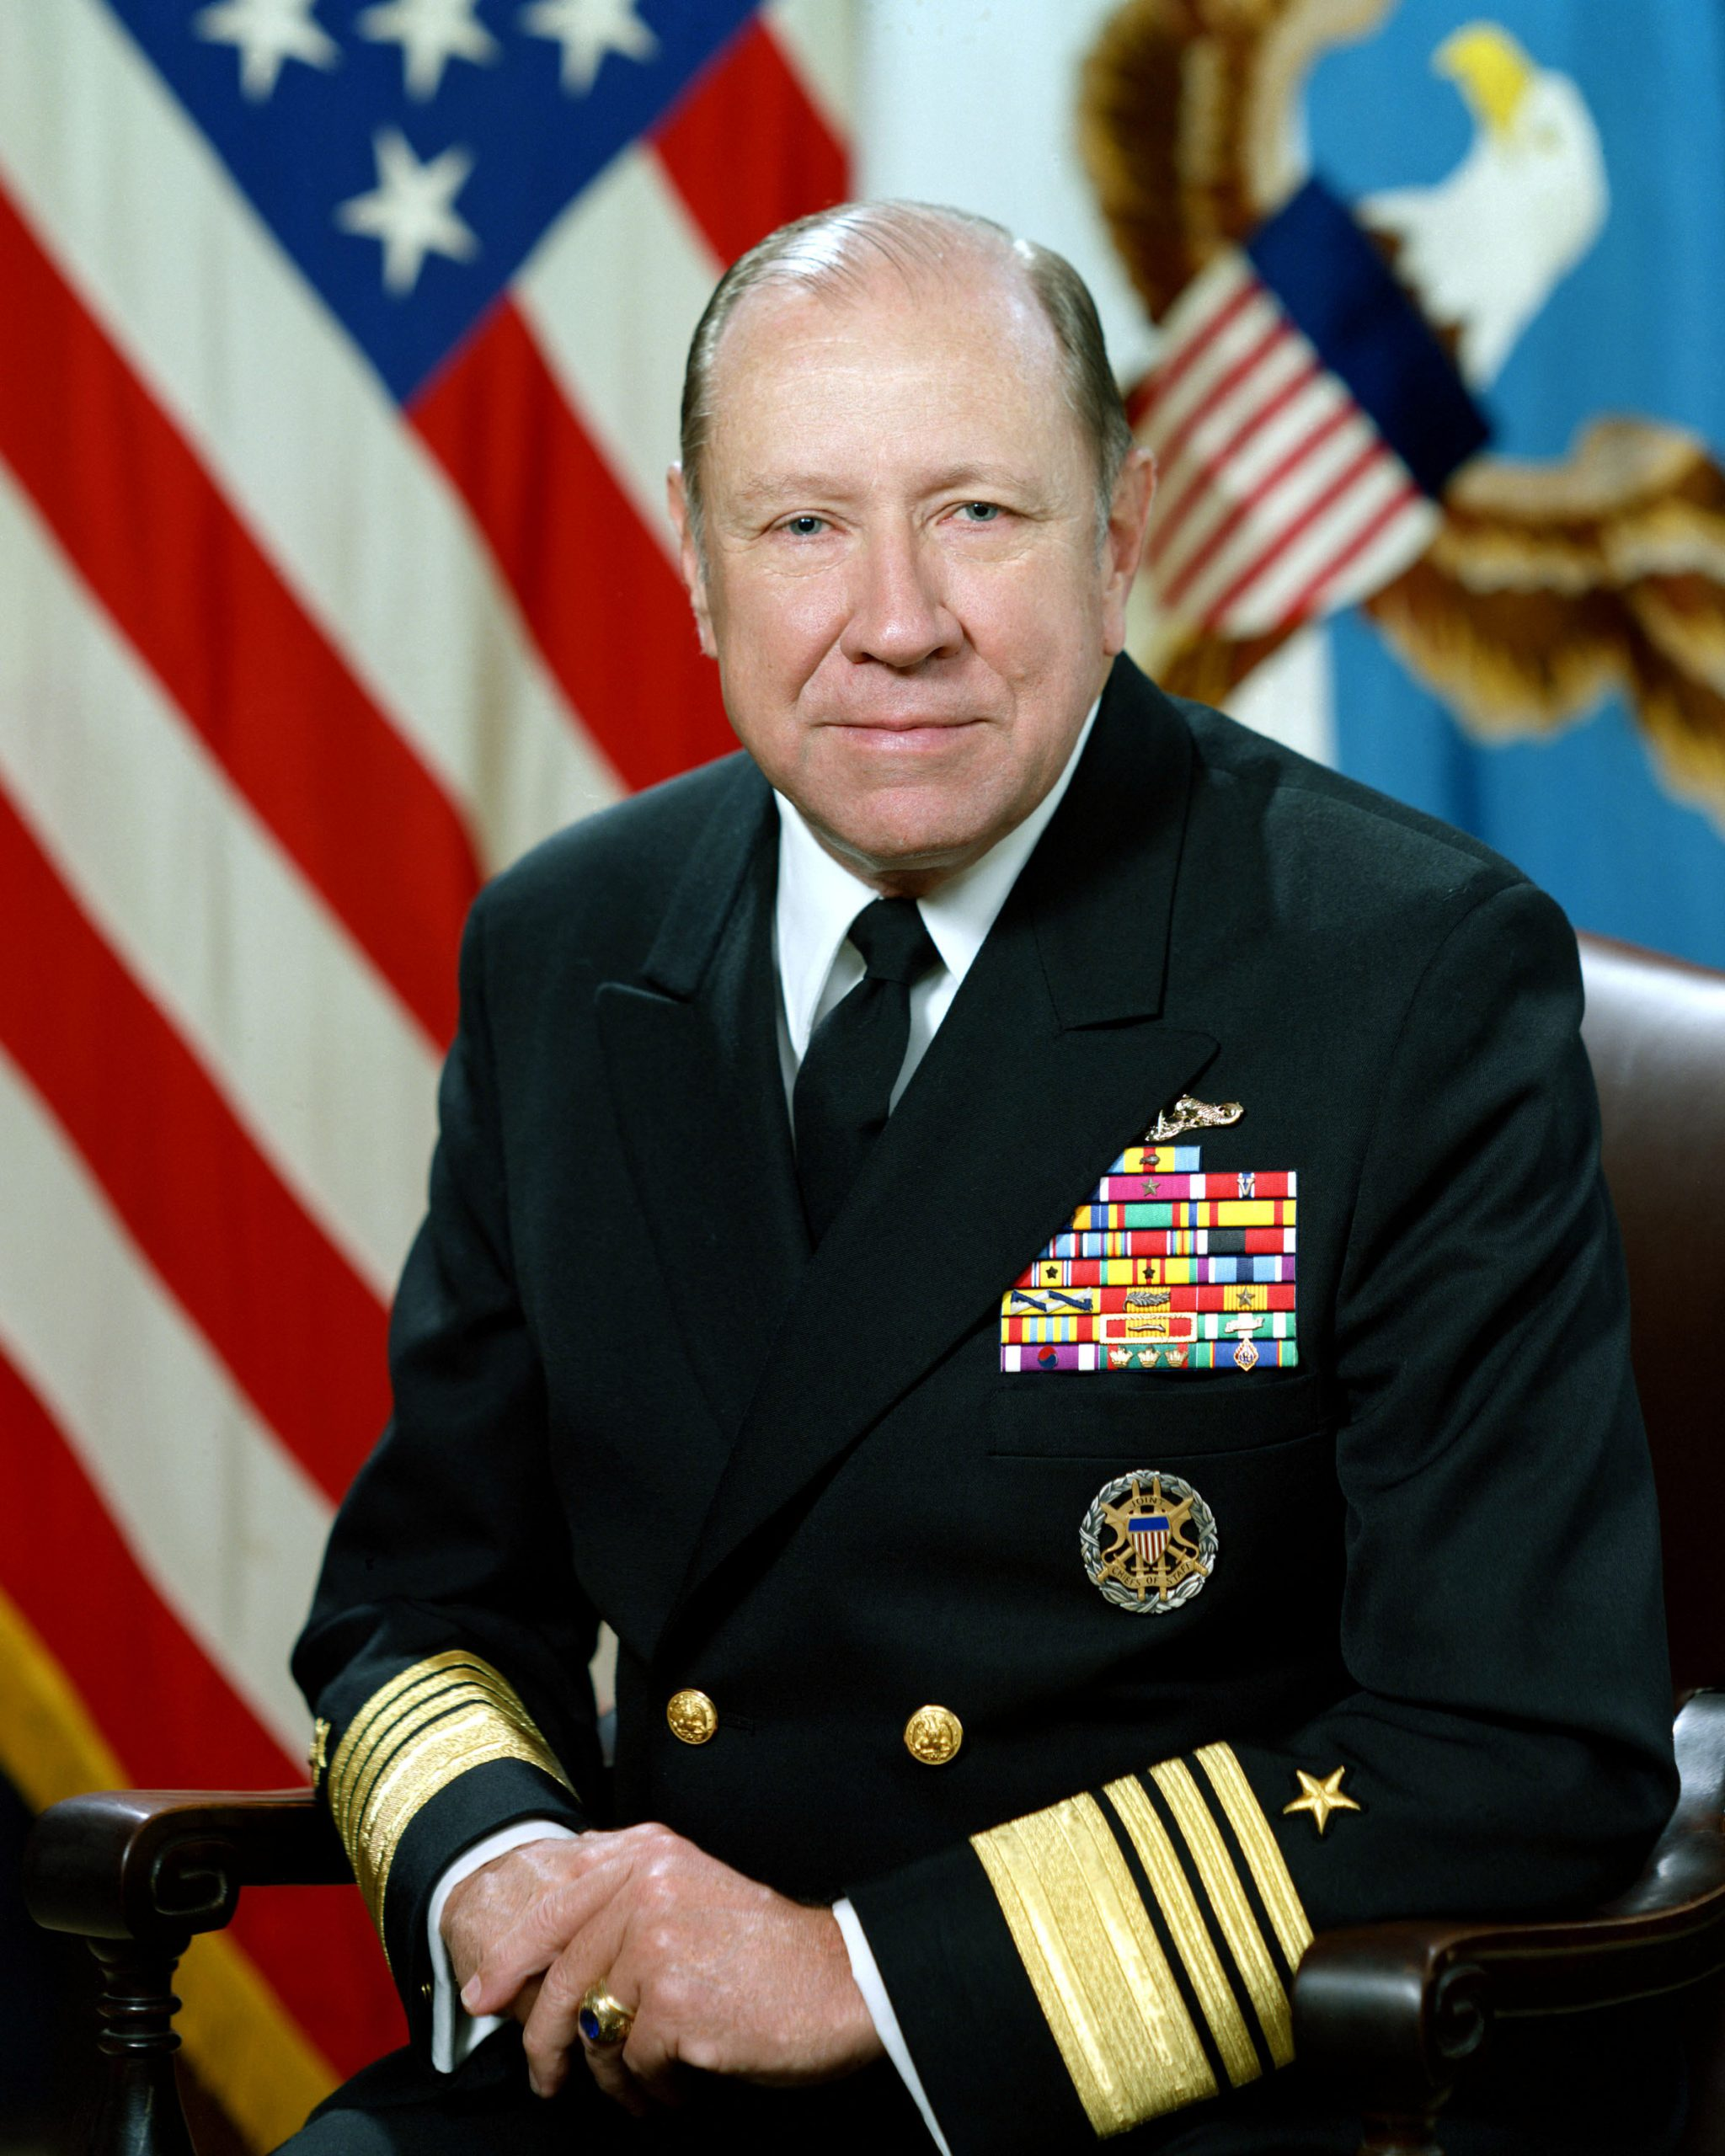 ADM William J. Crowe Jr., USN.